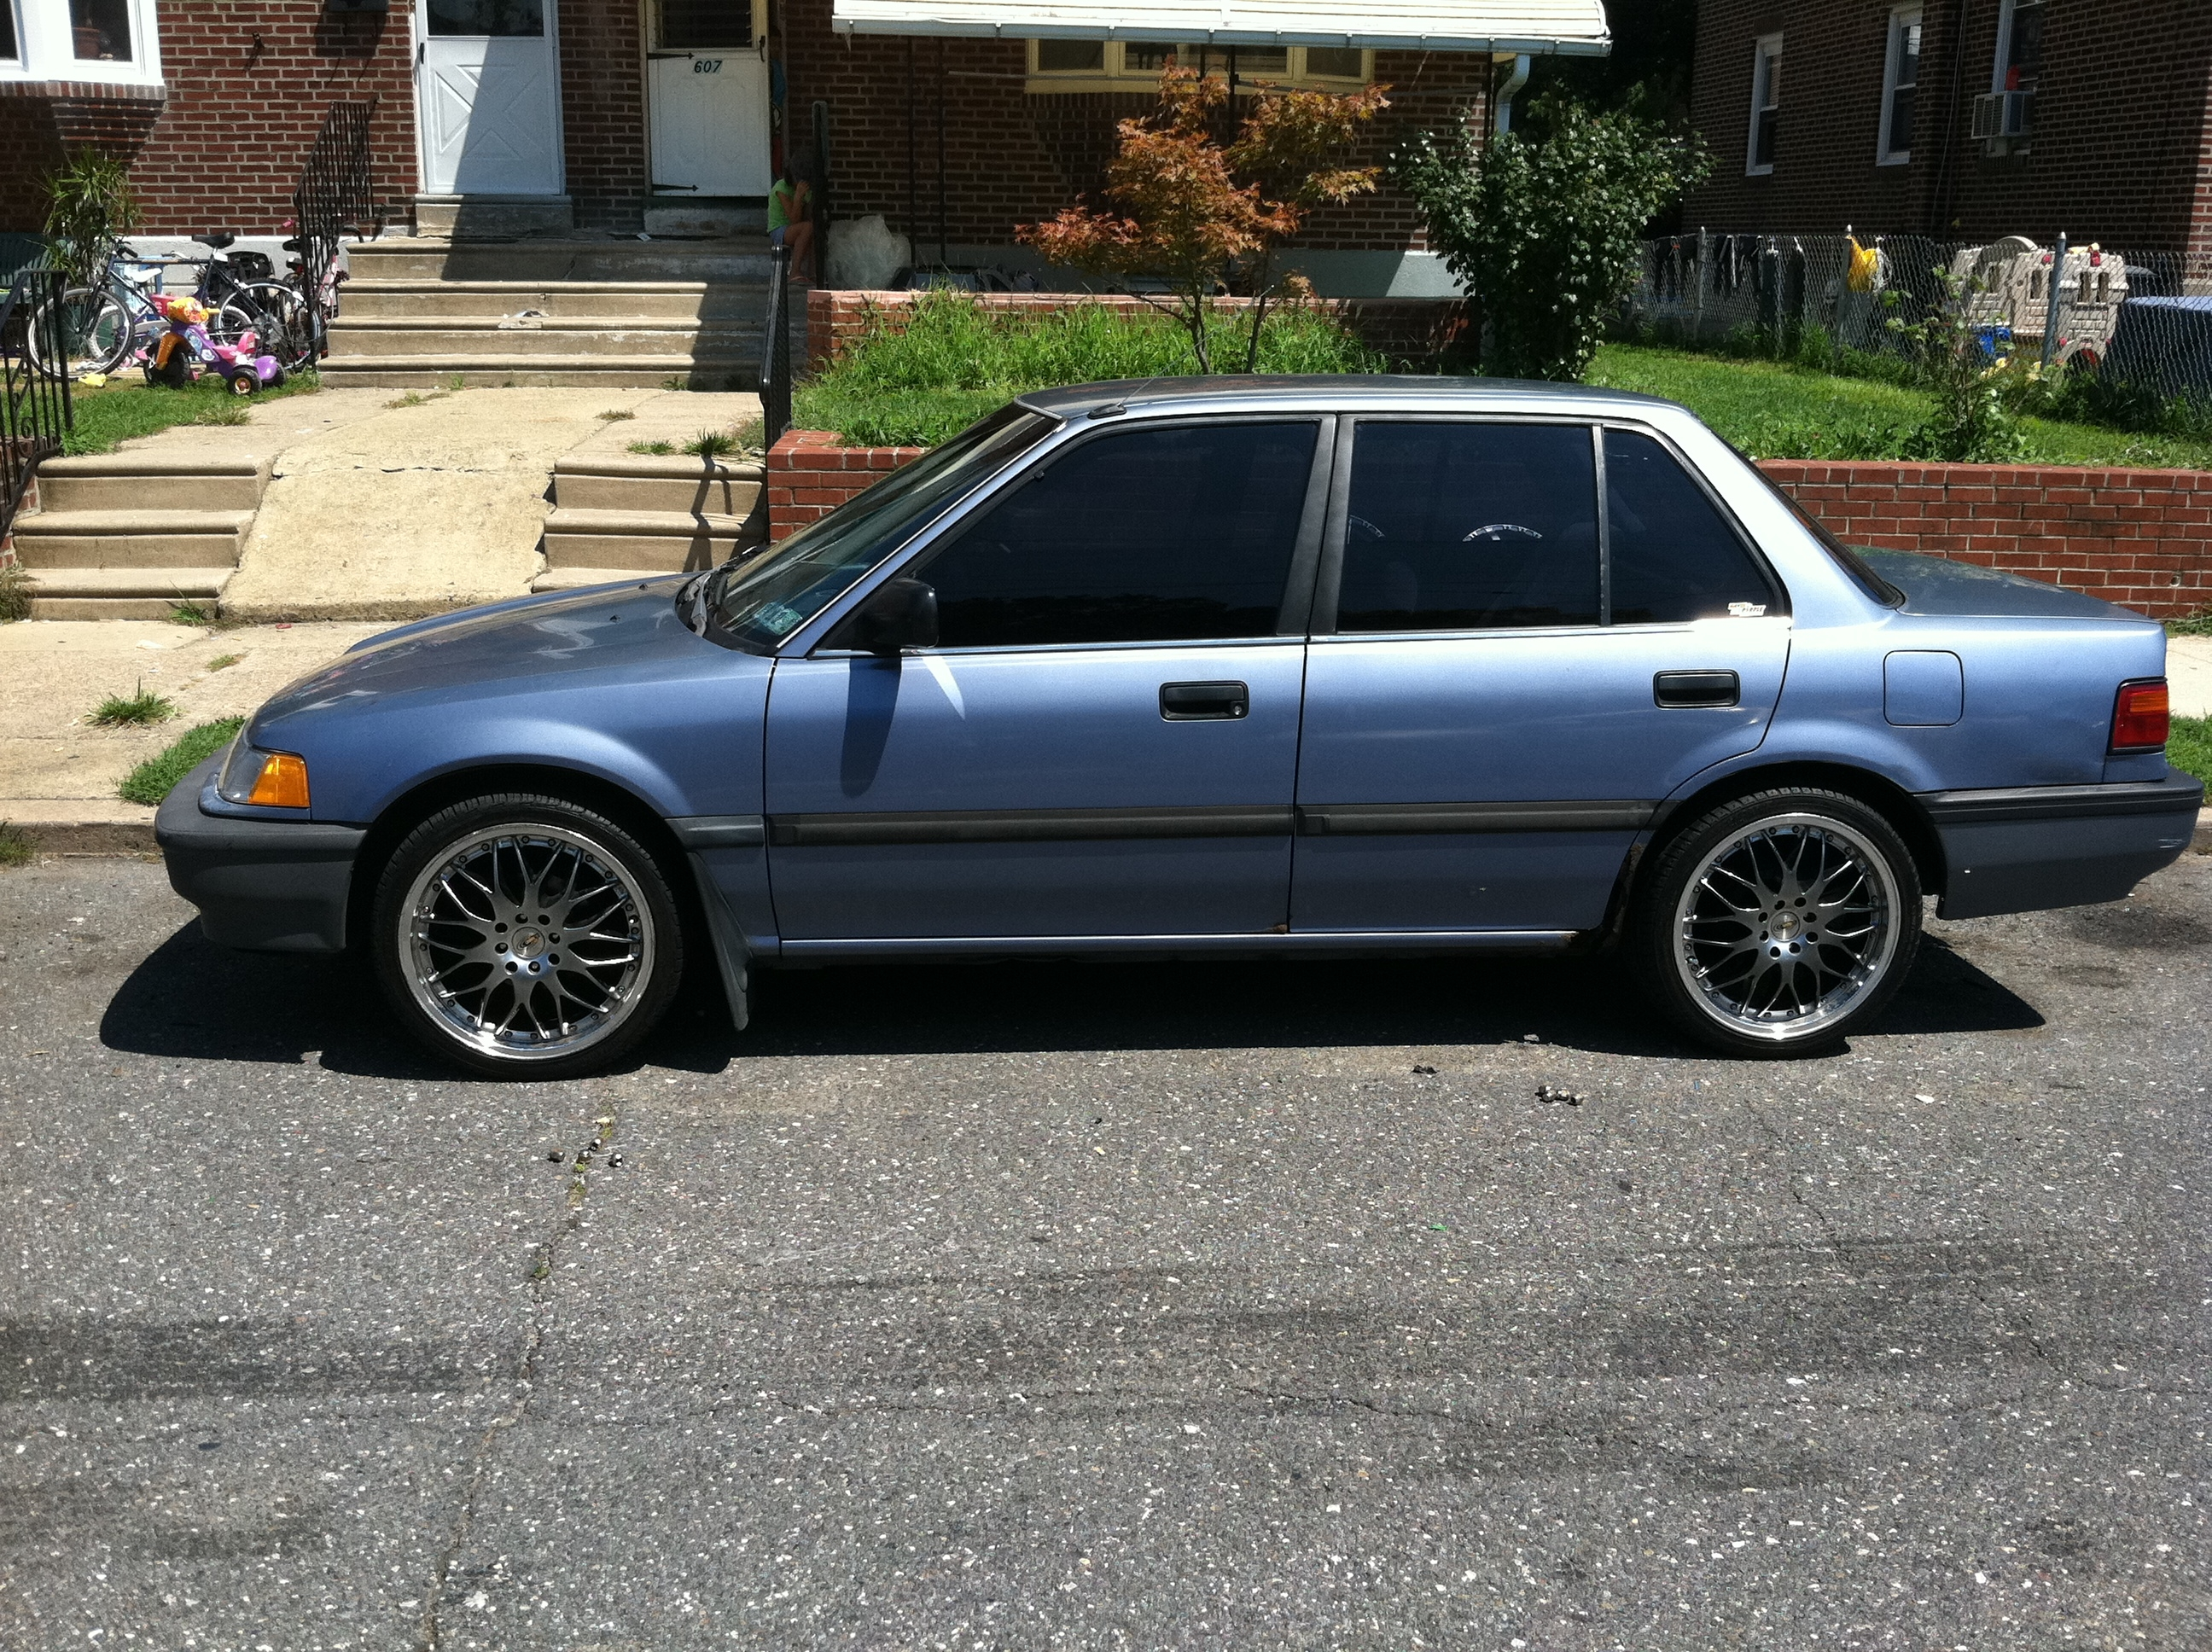 young reese 1990 honda civicdx sedan 4d specs photos modification info at cardomain. Black Bedroom Furniture Sets. Home Design Ideas